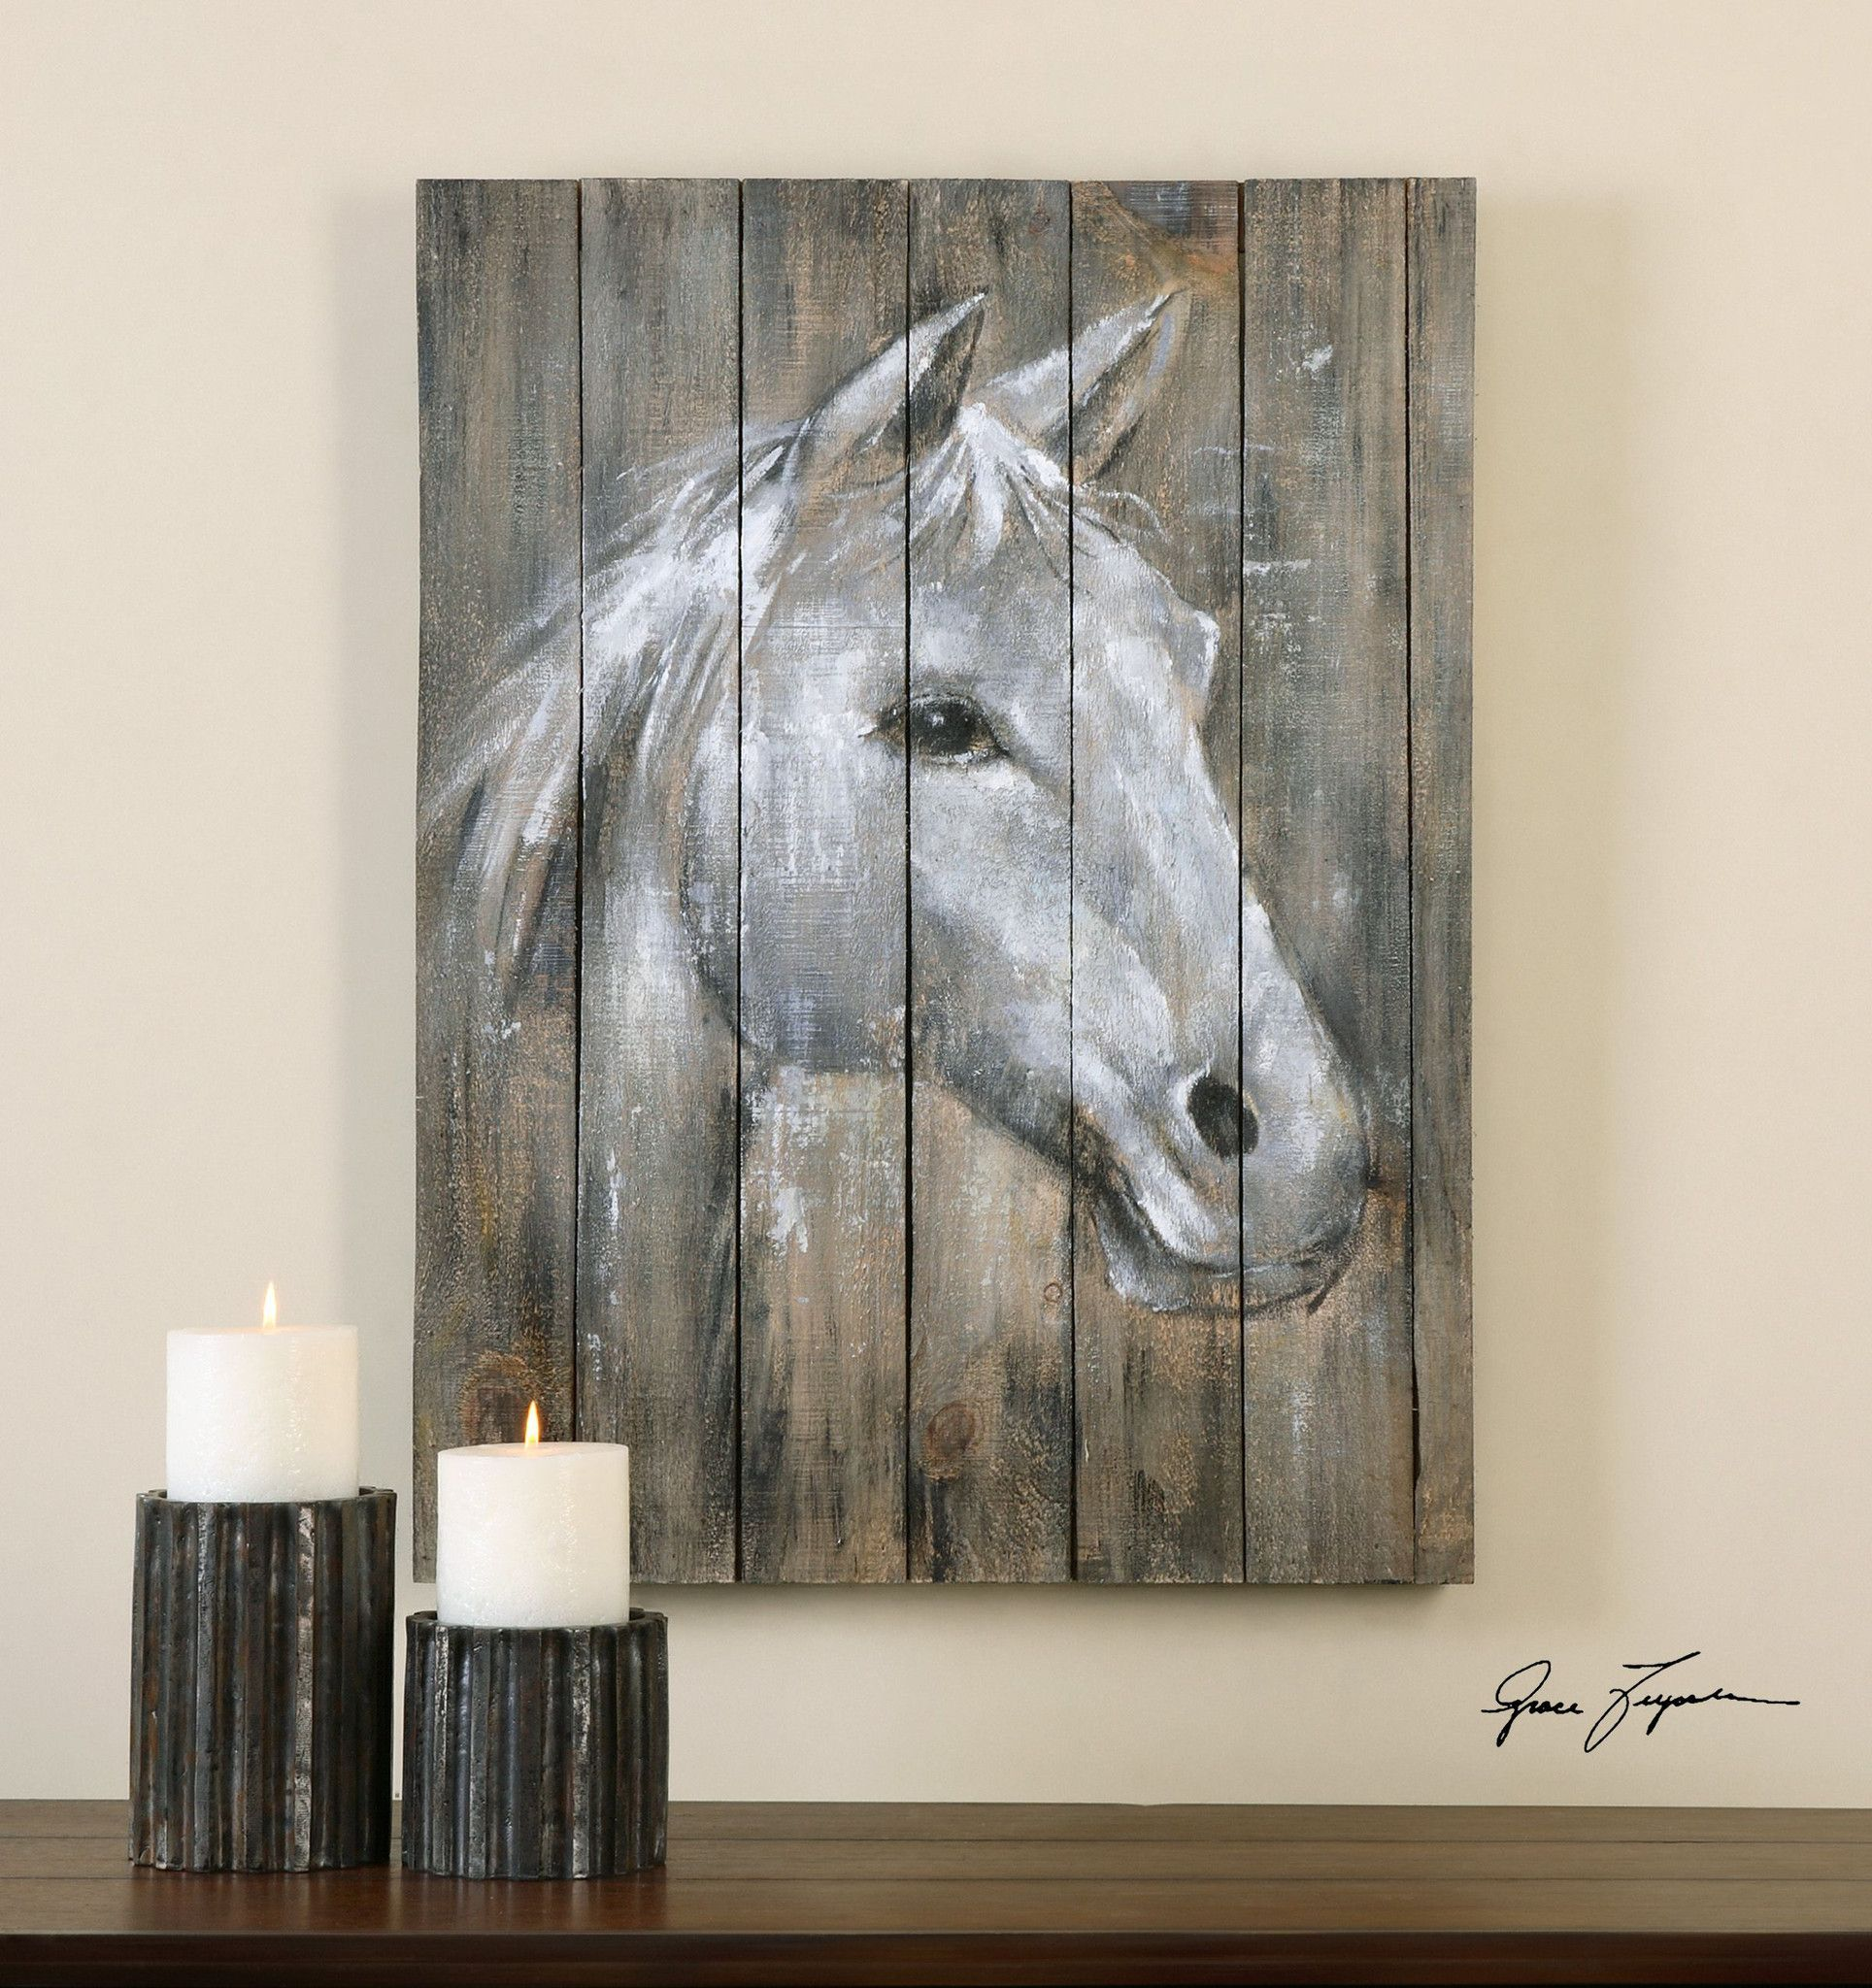 Hand Painted On Strips Of Barn Wood, Wood Strips Are Randomly Raised ...